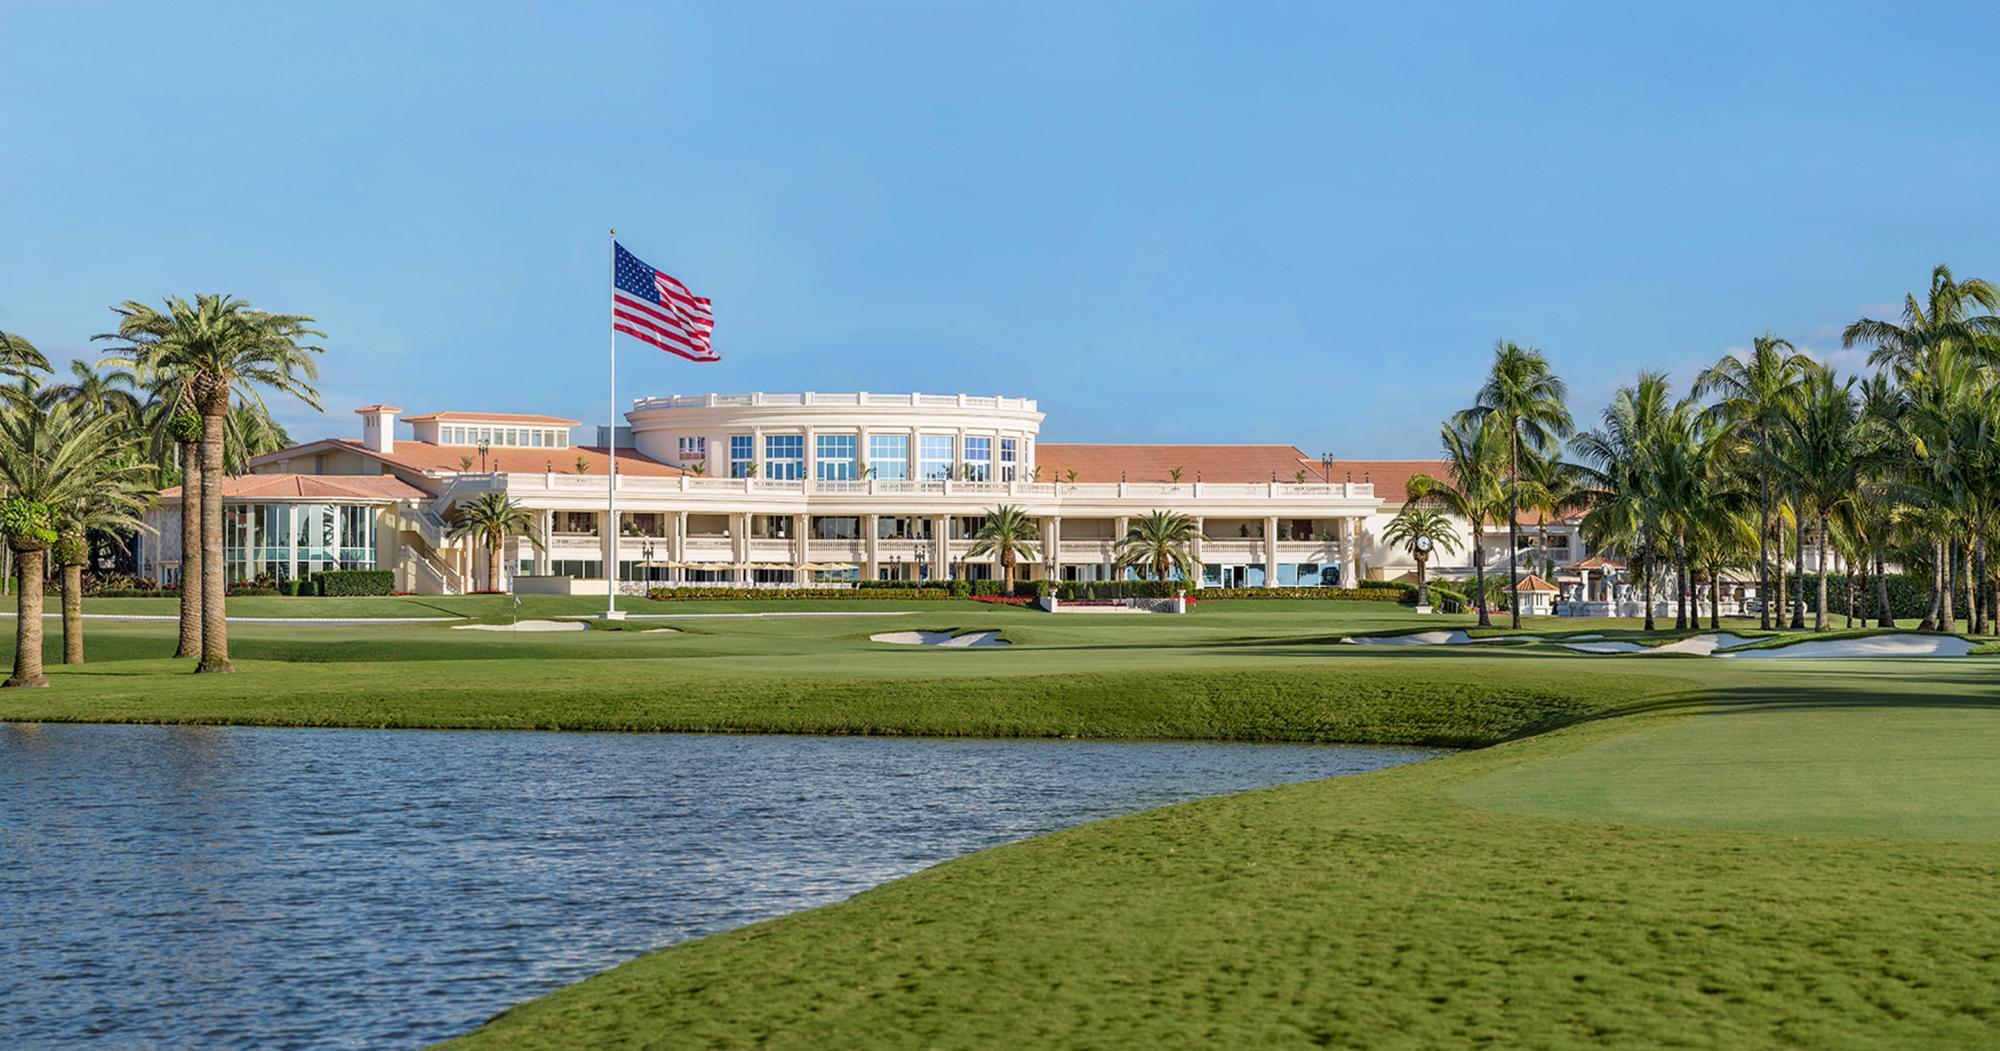 The Trump National Doral Miami's beautiful hotel in amazing Florida.